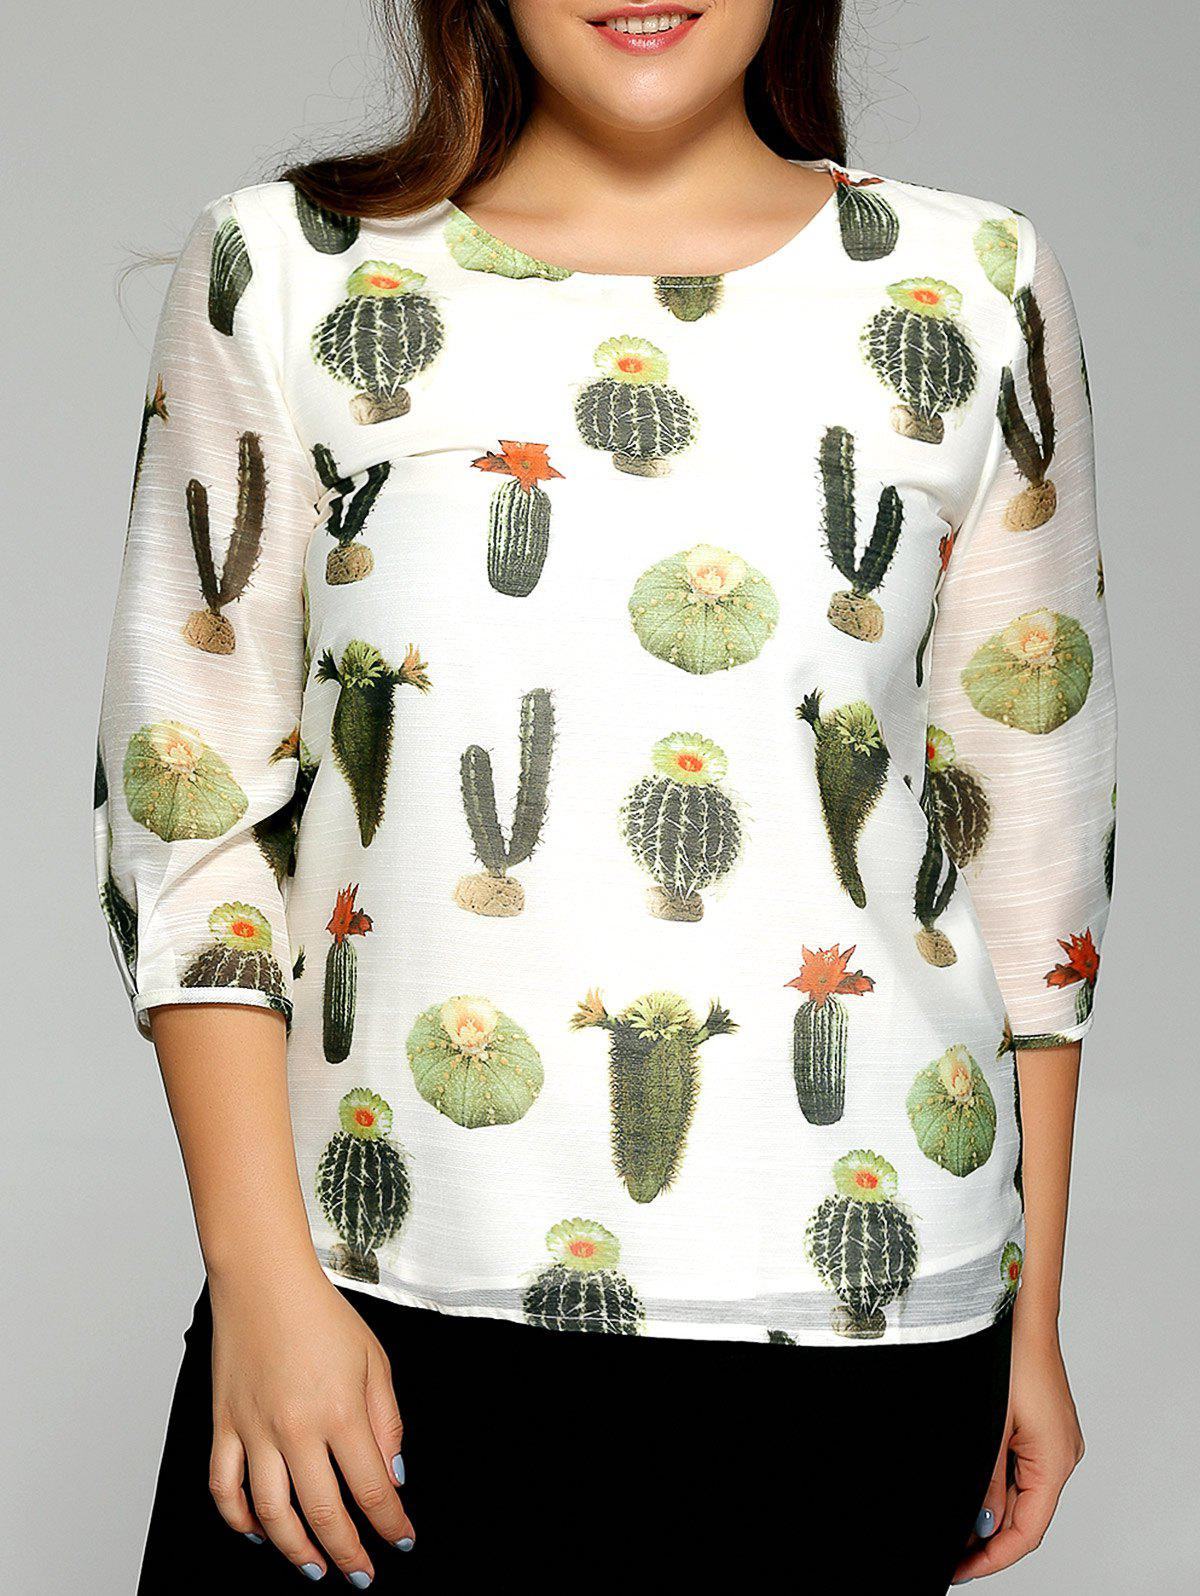 Oversized Fashion Cactus Plant Print Chiffon Blouse - OFF WHITE 5XL